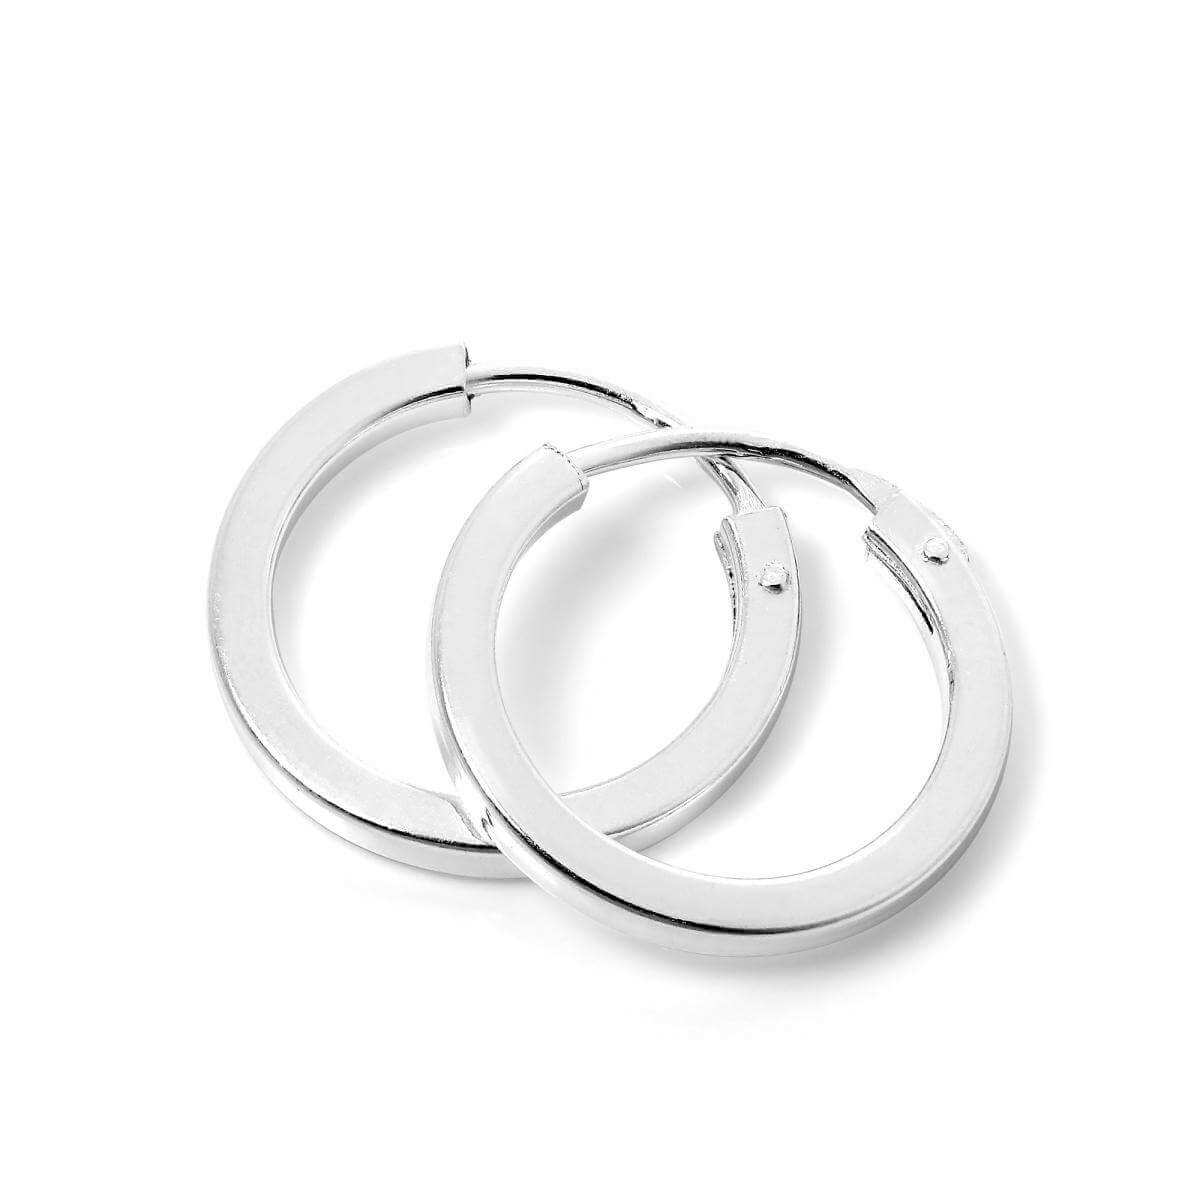 Plain Sterling Silver 14mm Square Sleeper Hoop Earrings